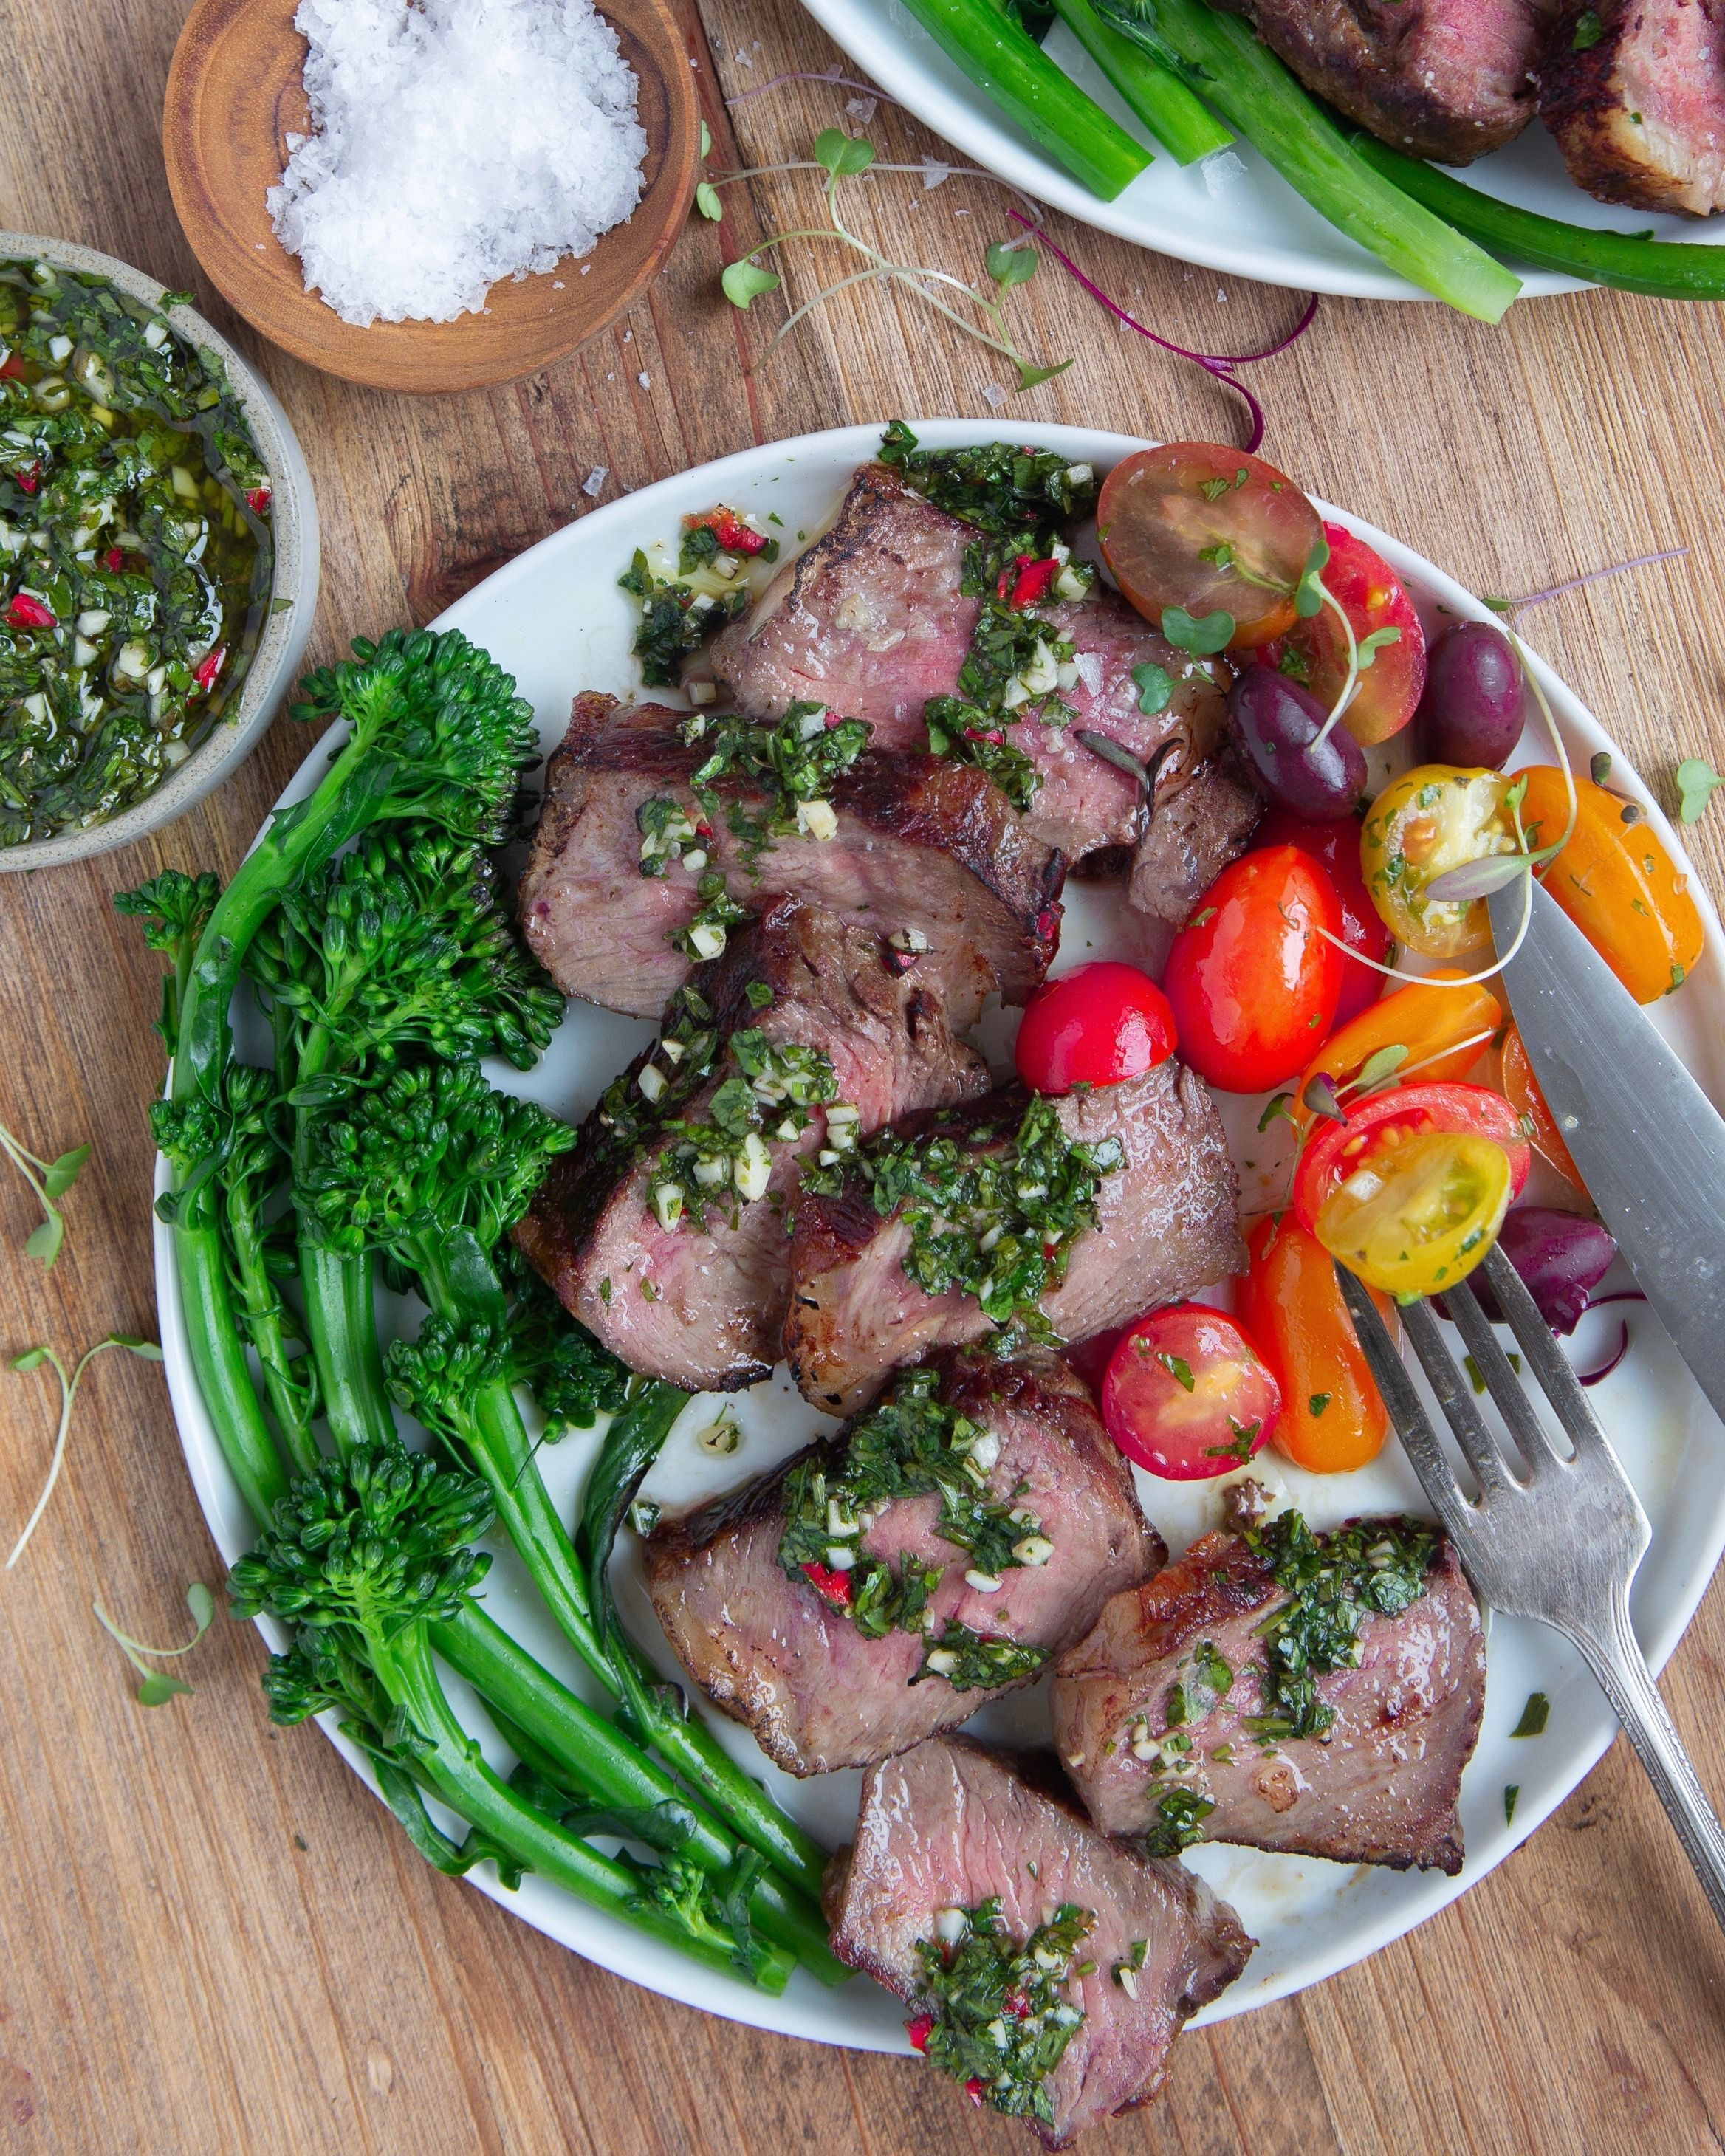 Seared Strip Steak with Chimichurri